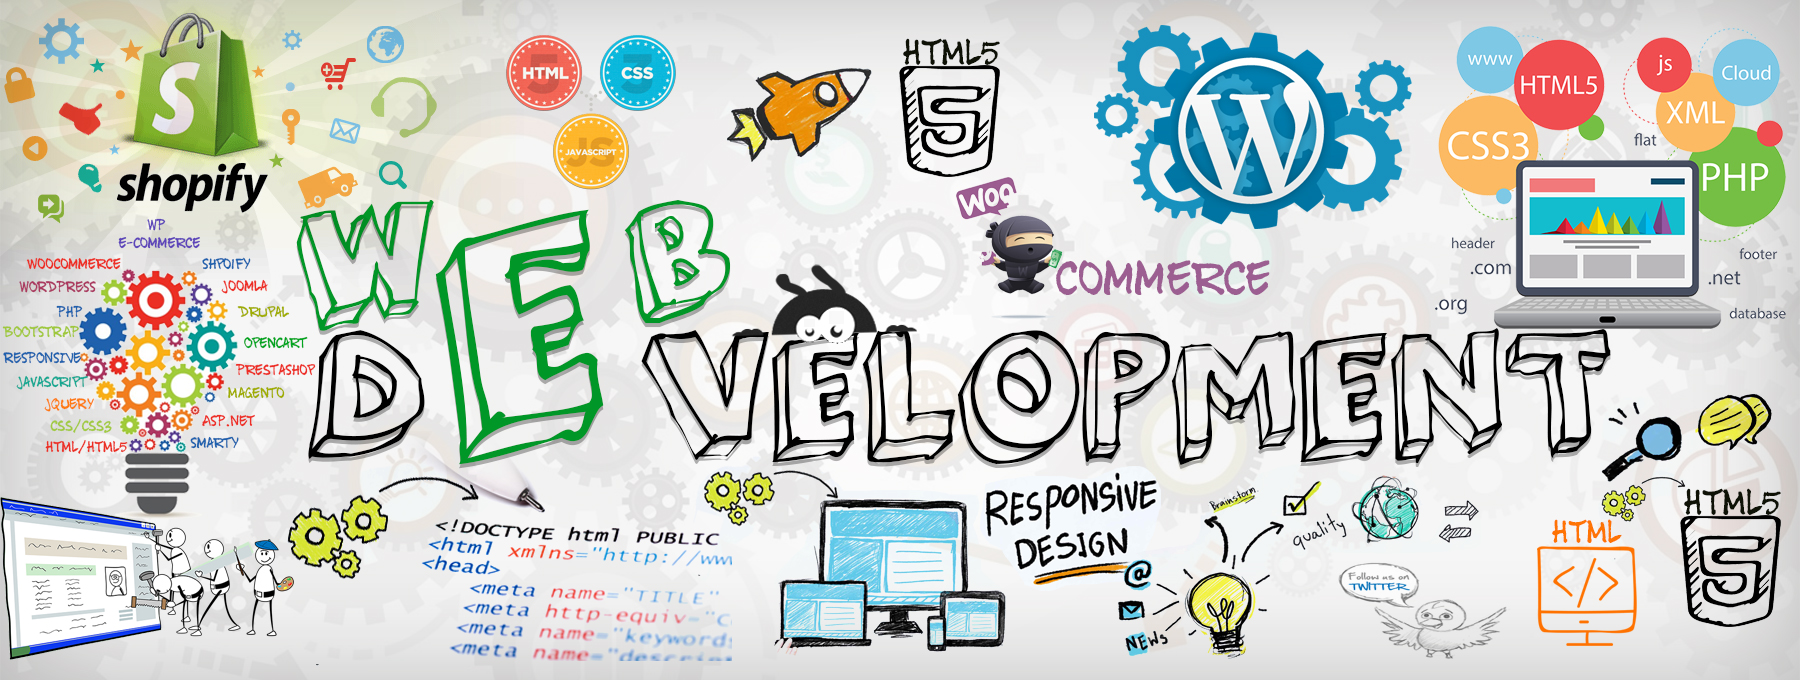 Avail Custom Web Development Services